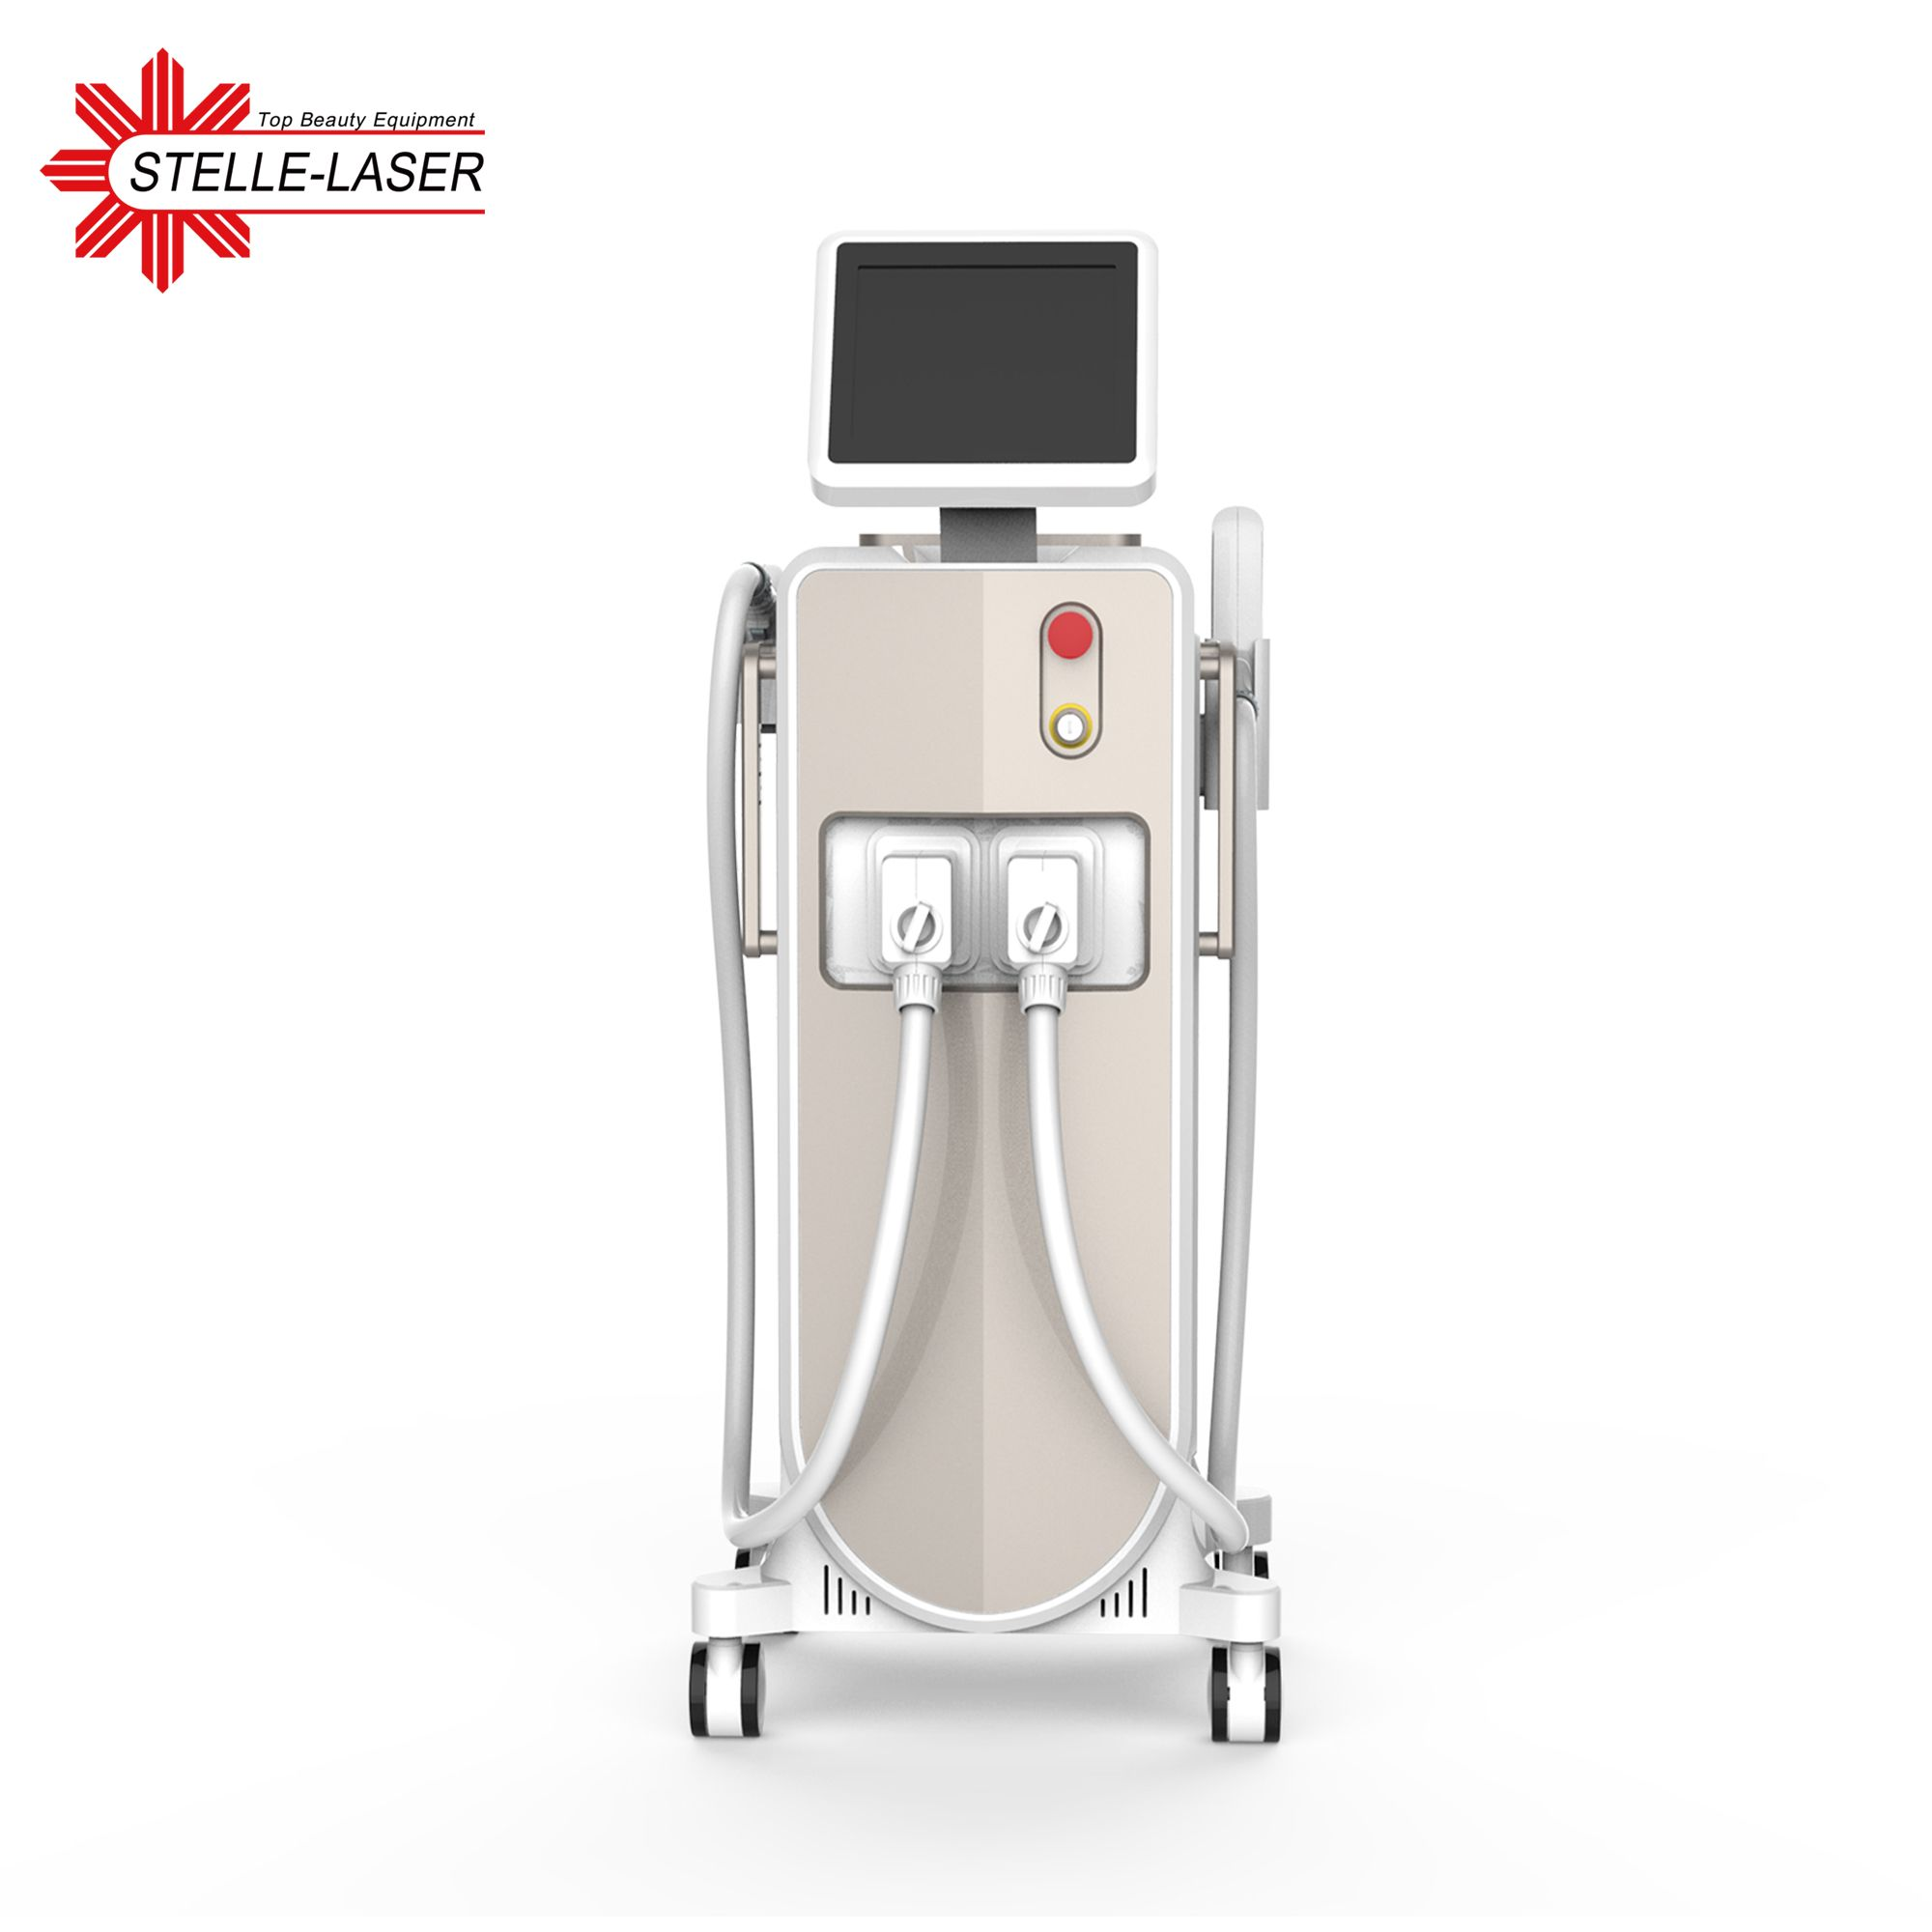 Nd yag laser tattoo removal + 808nm diode laser hair